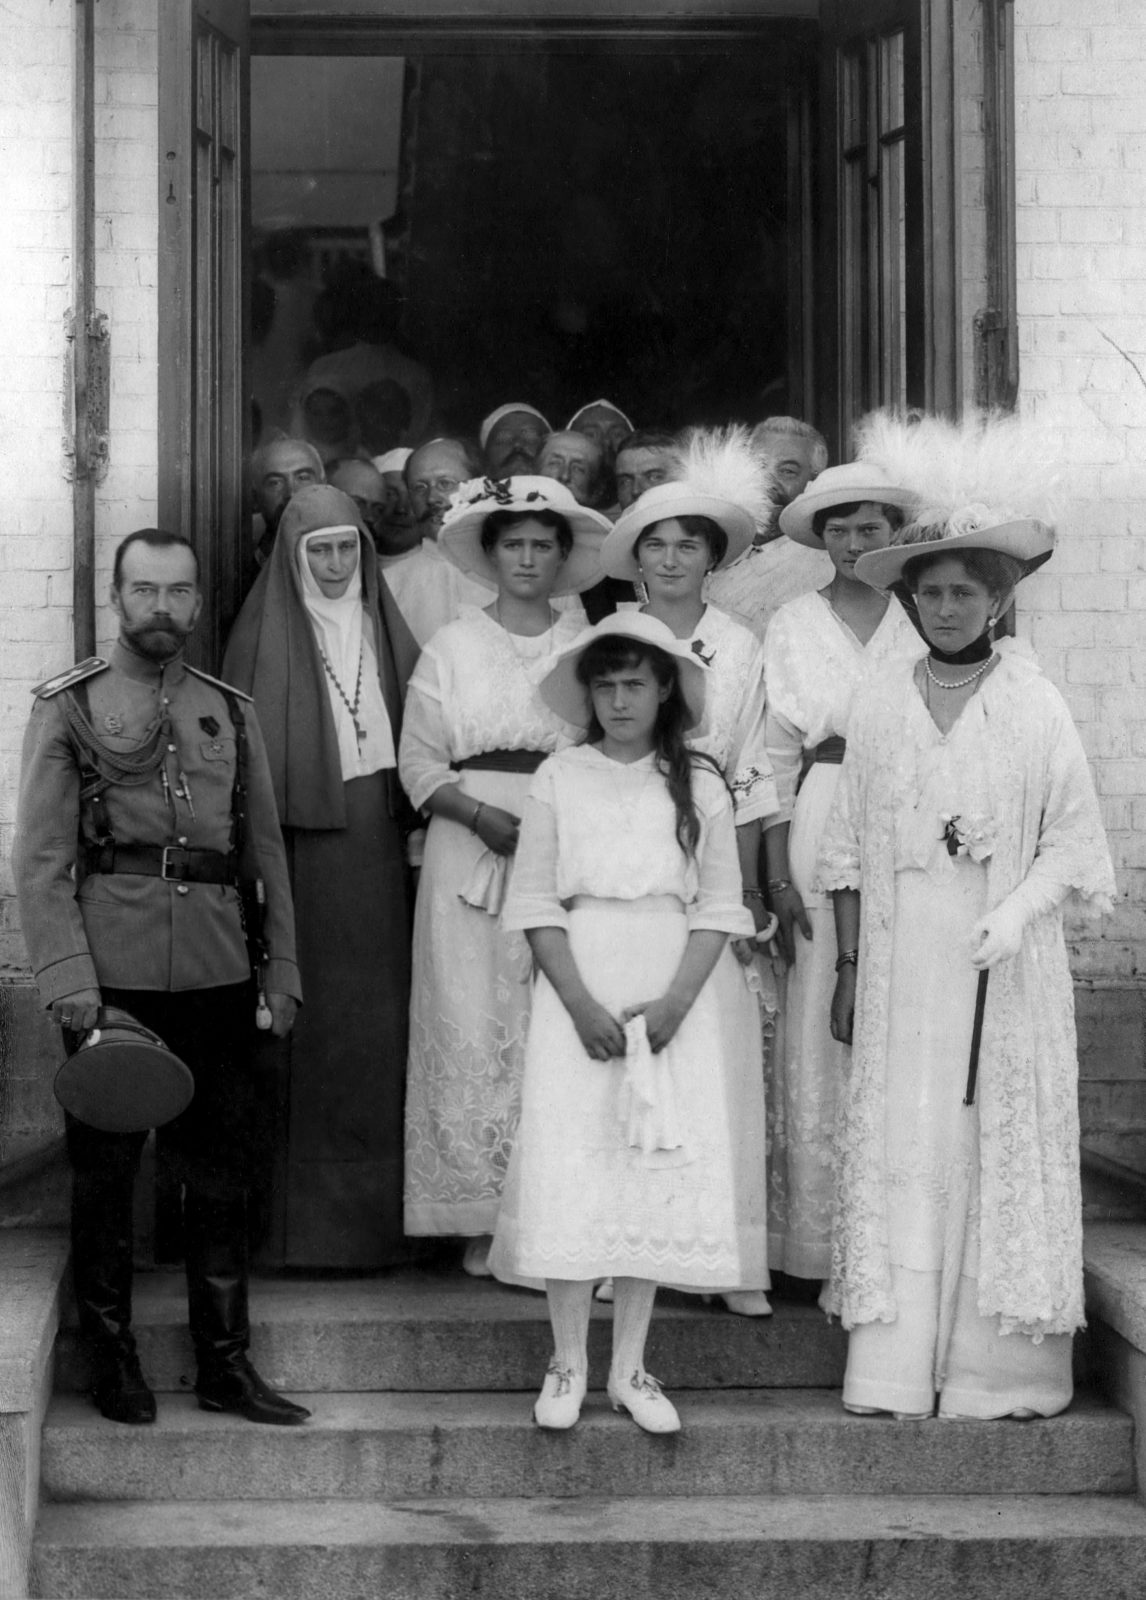 The family of the Emperor Nicholas II and the founder and abbess of the Martha and Mary Convent of the Sisters of Mercy Grand Duchess Elisaveta Feodorovna at the entrance to the Soldatenkov Hospital .